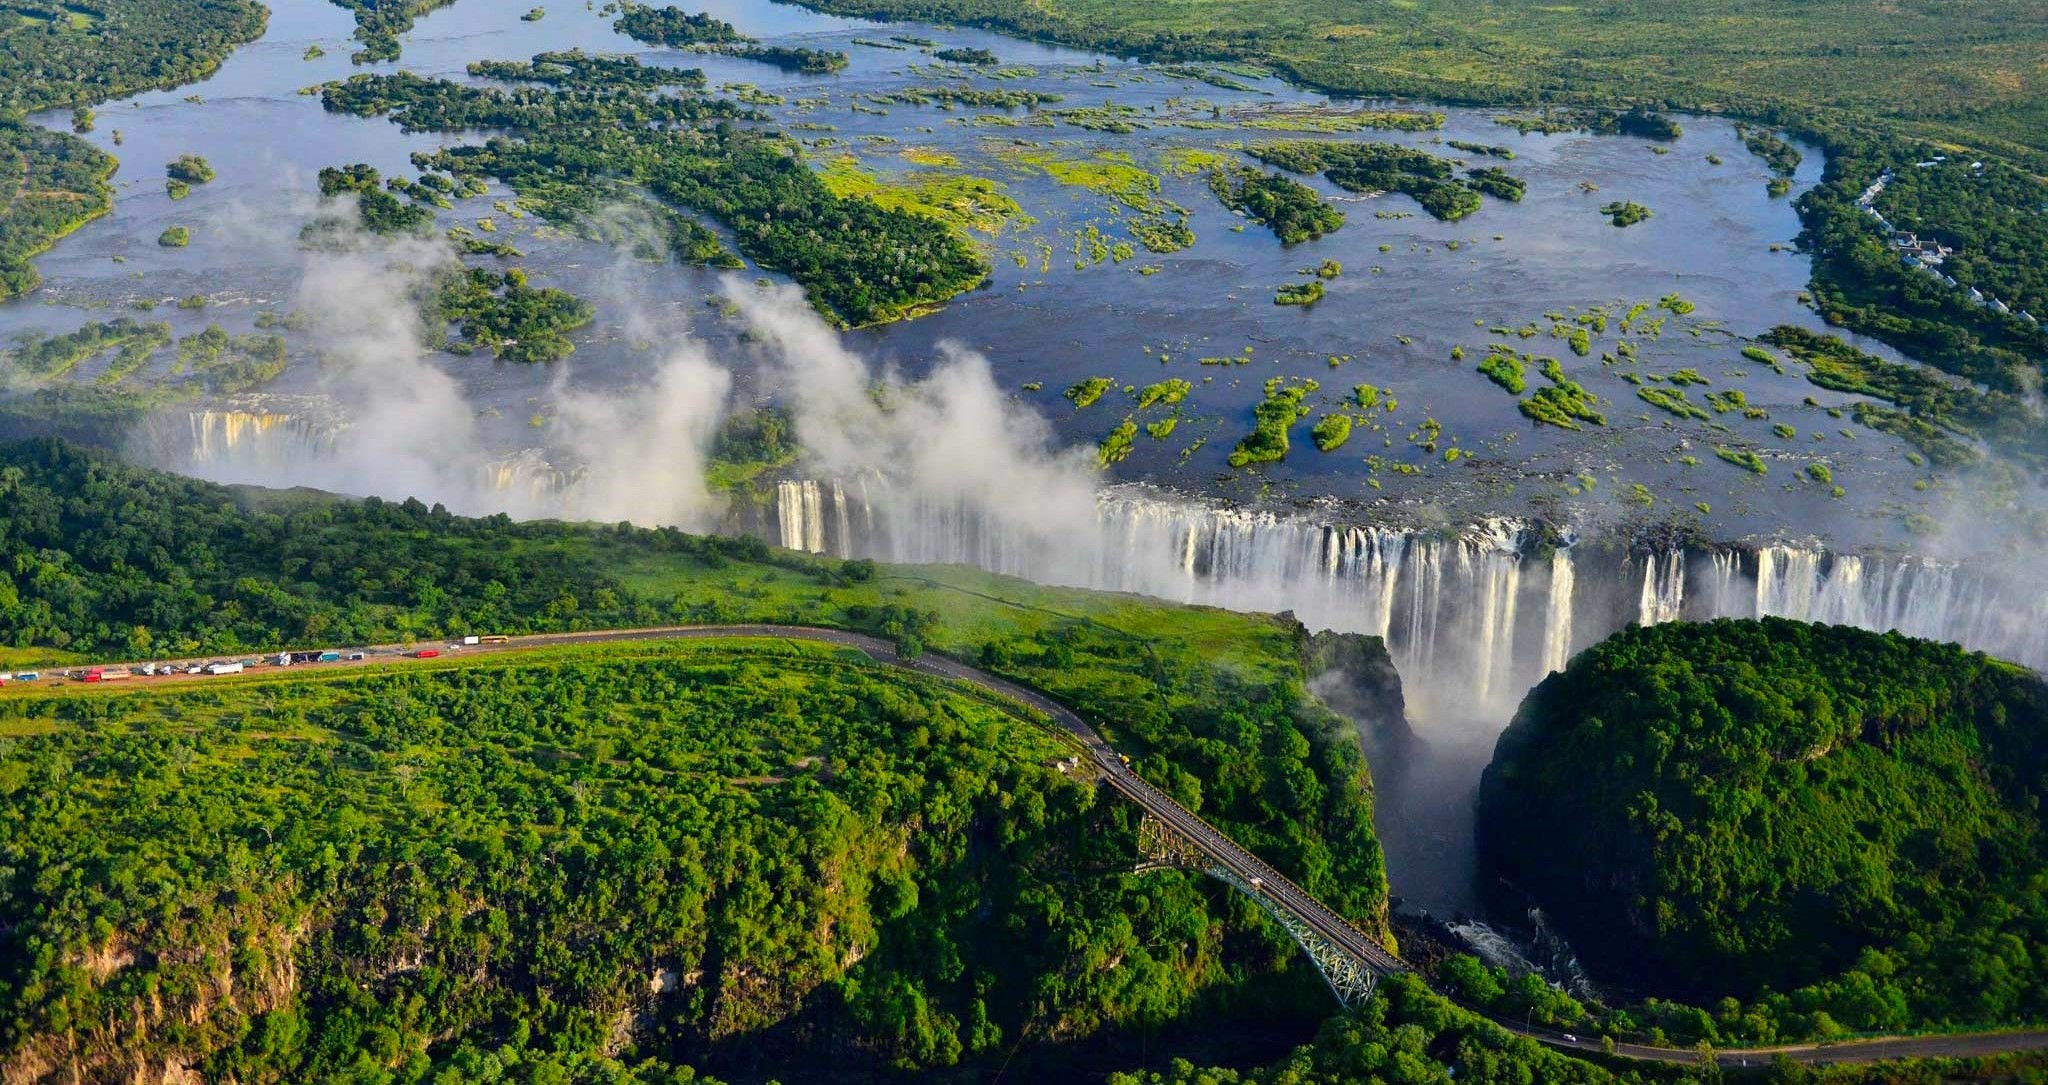 Victoria Falls as viewed from above